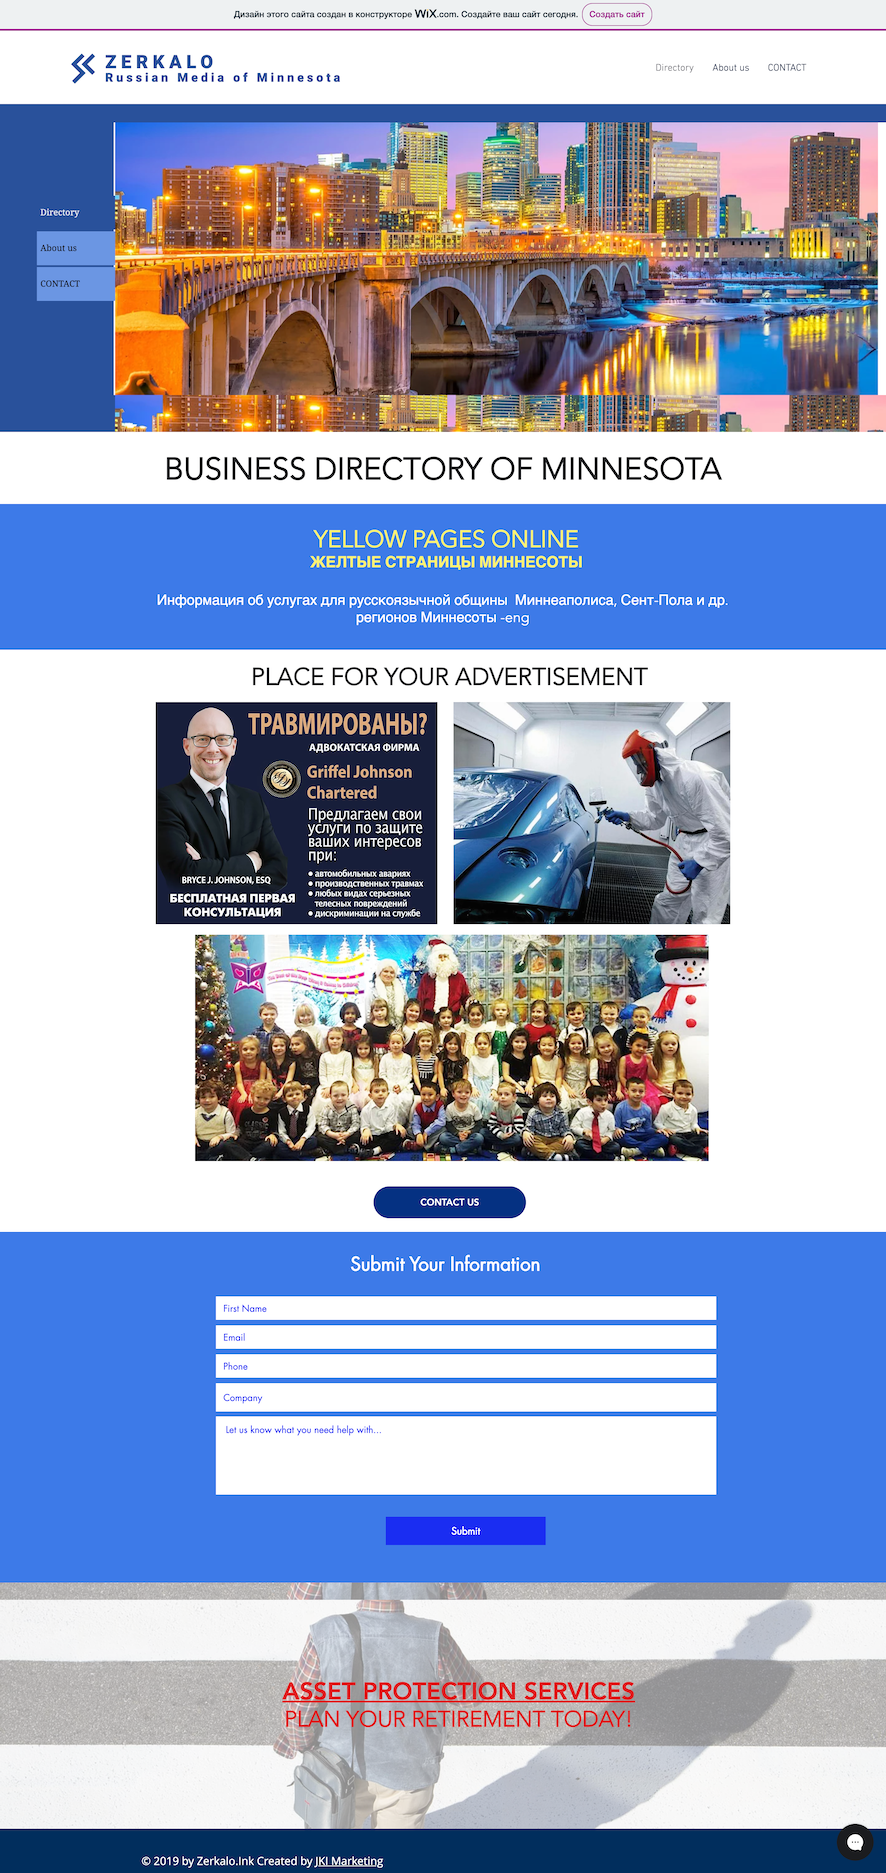 Website Design For Digital Marketing Communications Company